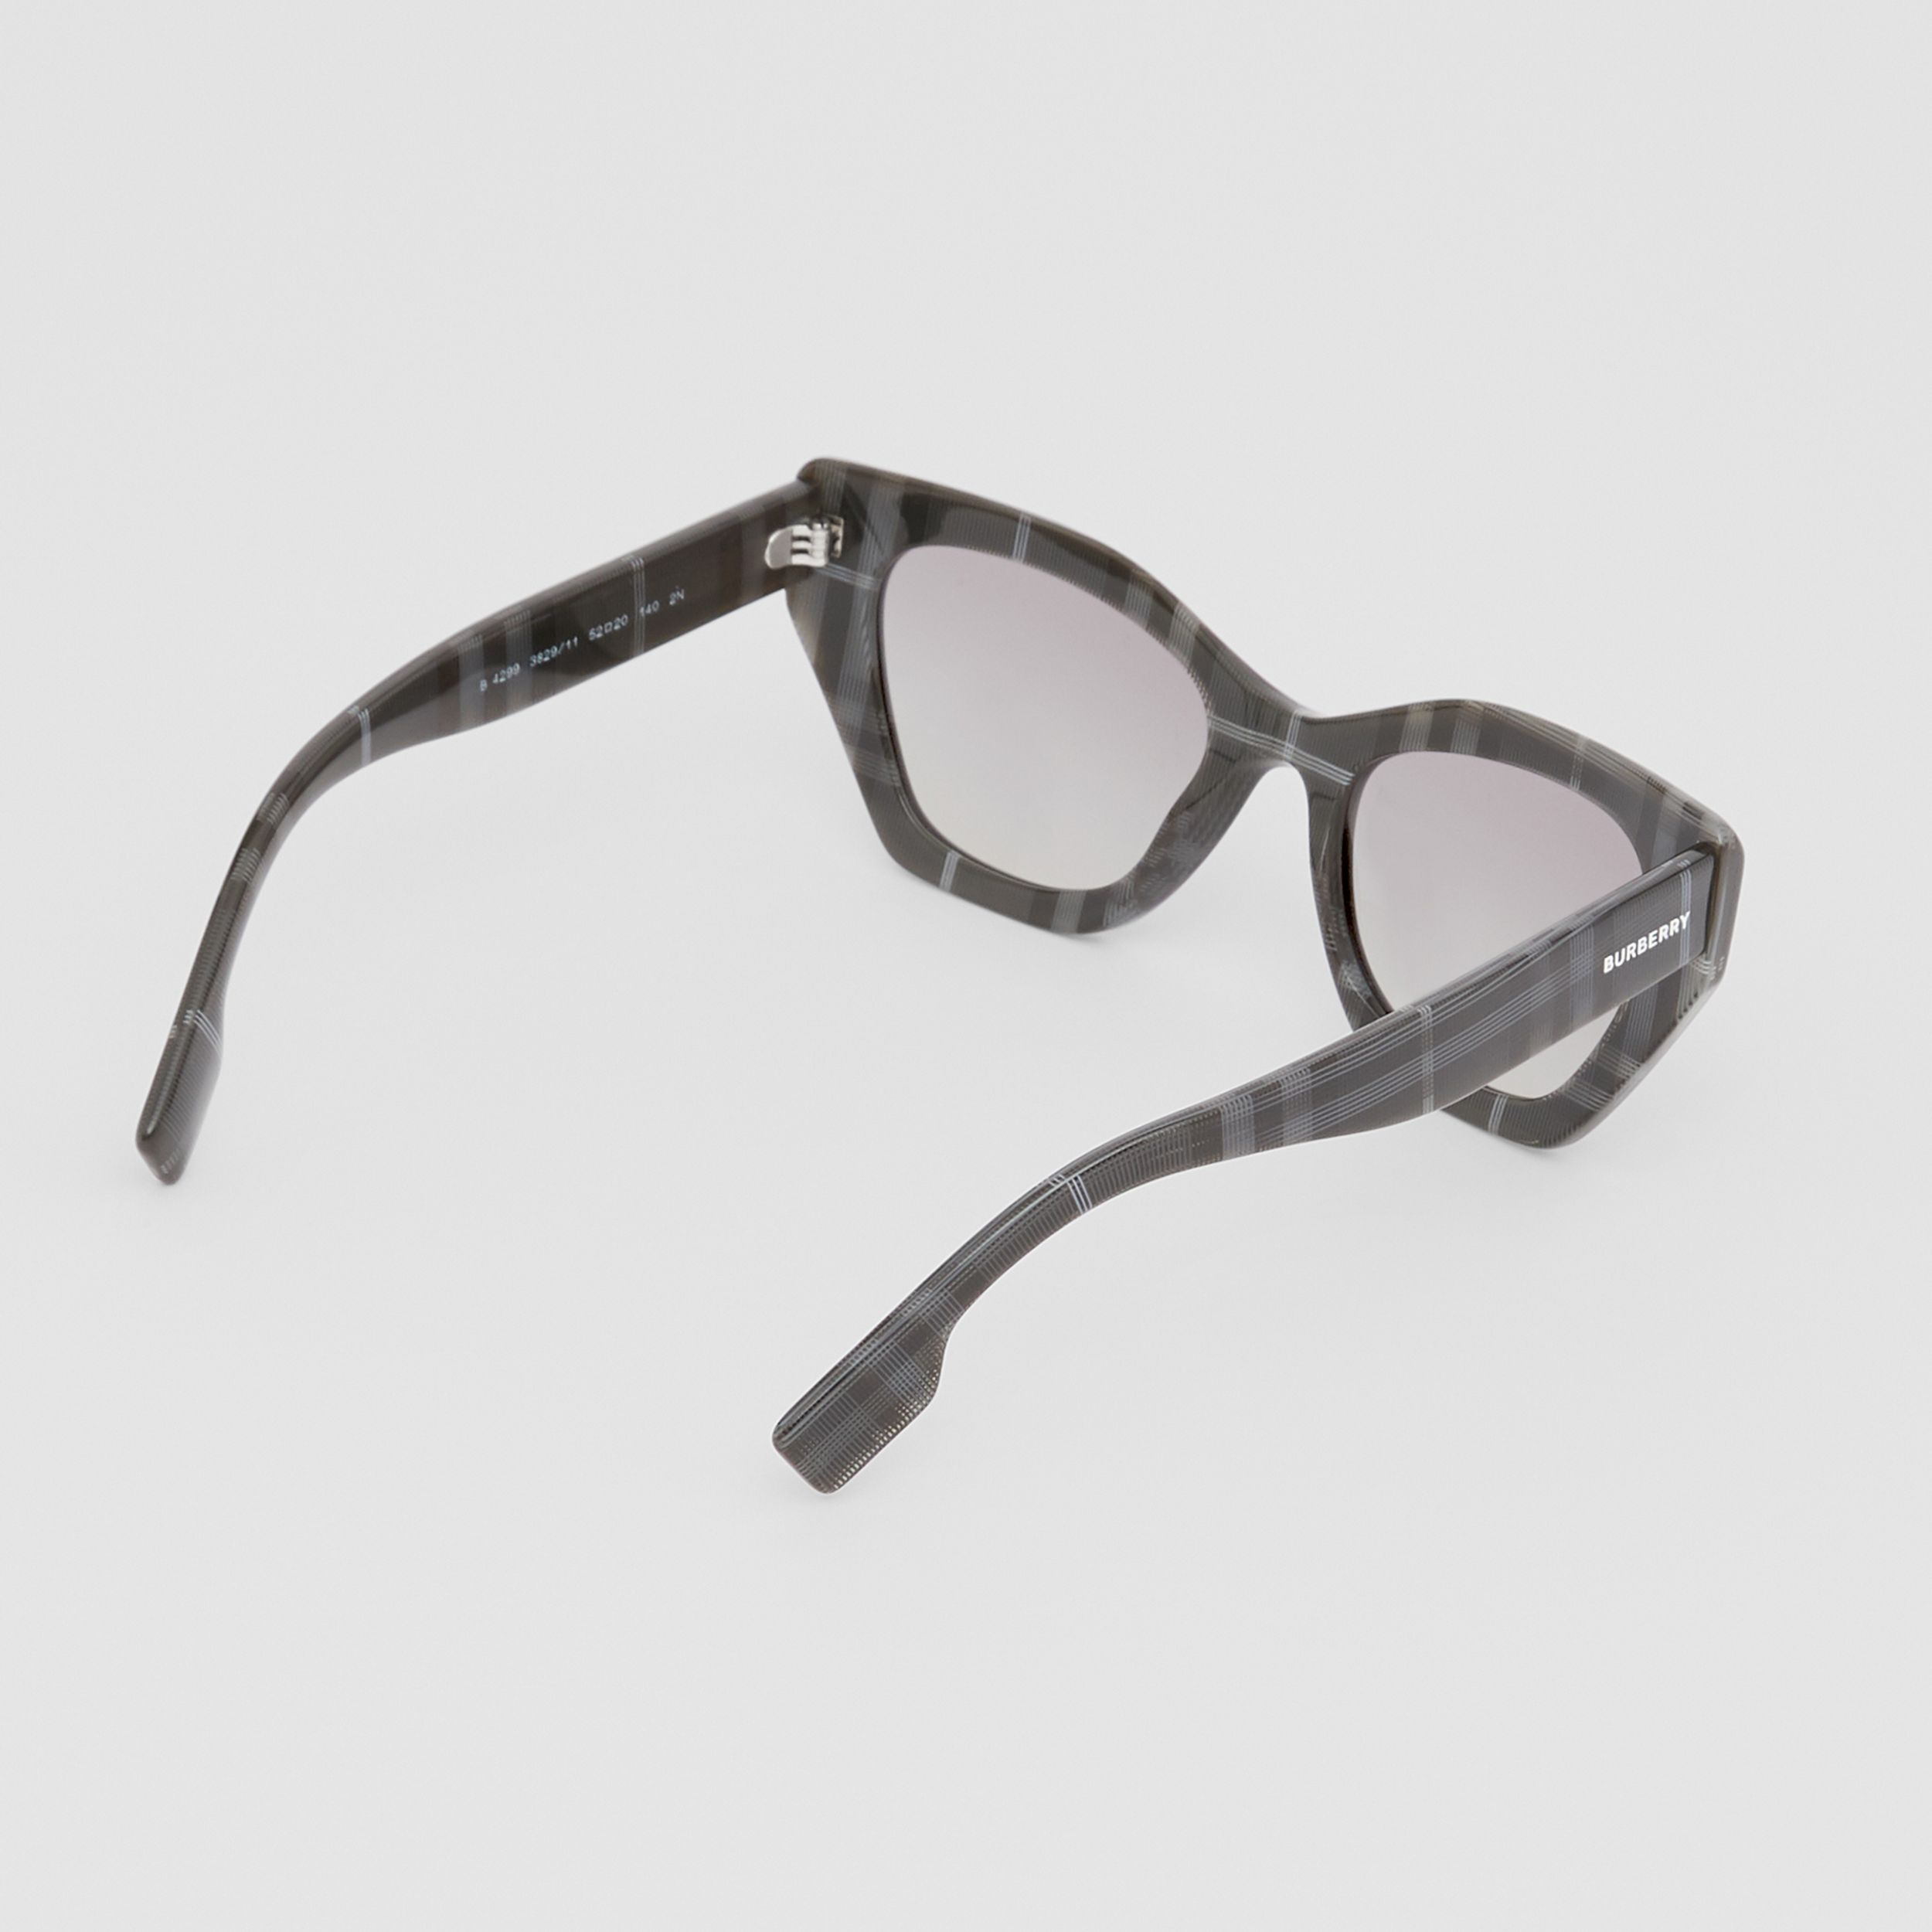 Butterfly Frame Sunglasses in Transparent Dark Grey - Women | Burberry United Kingdom - 4